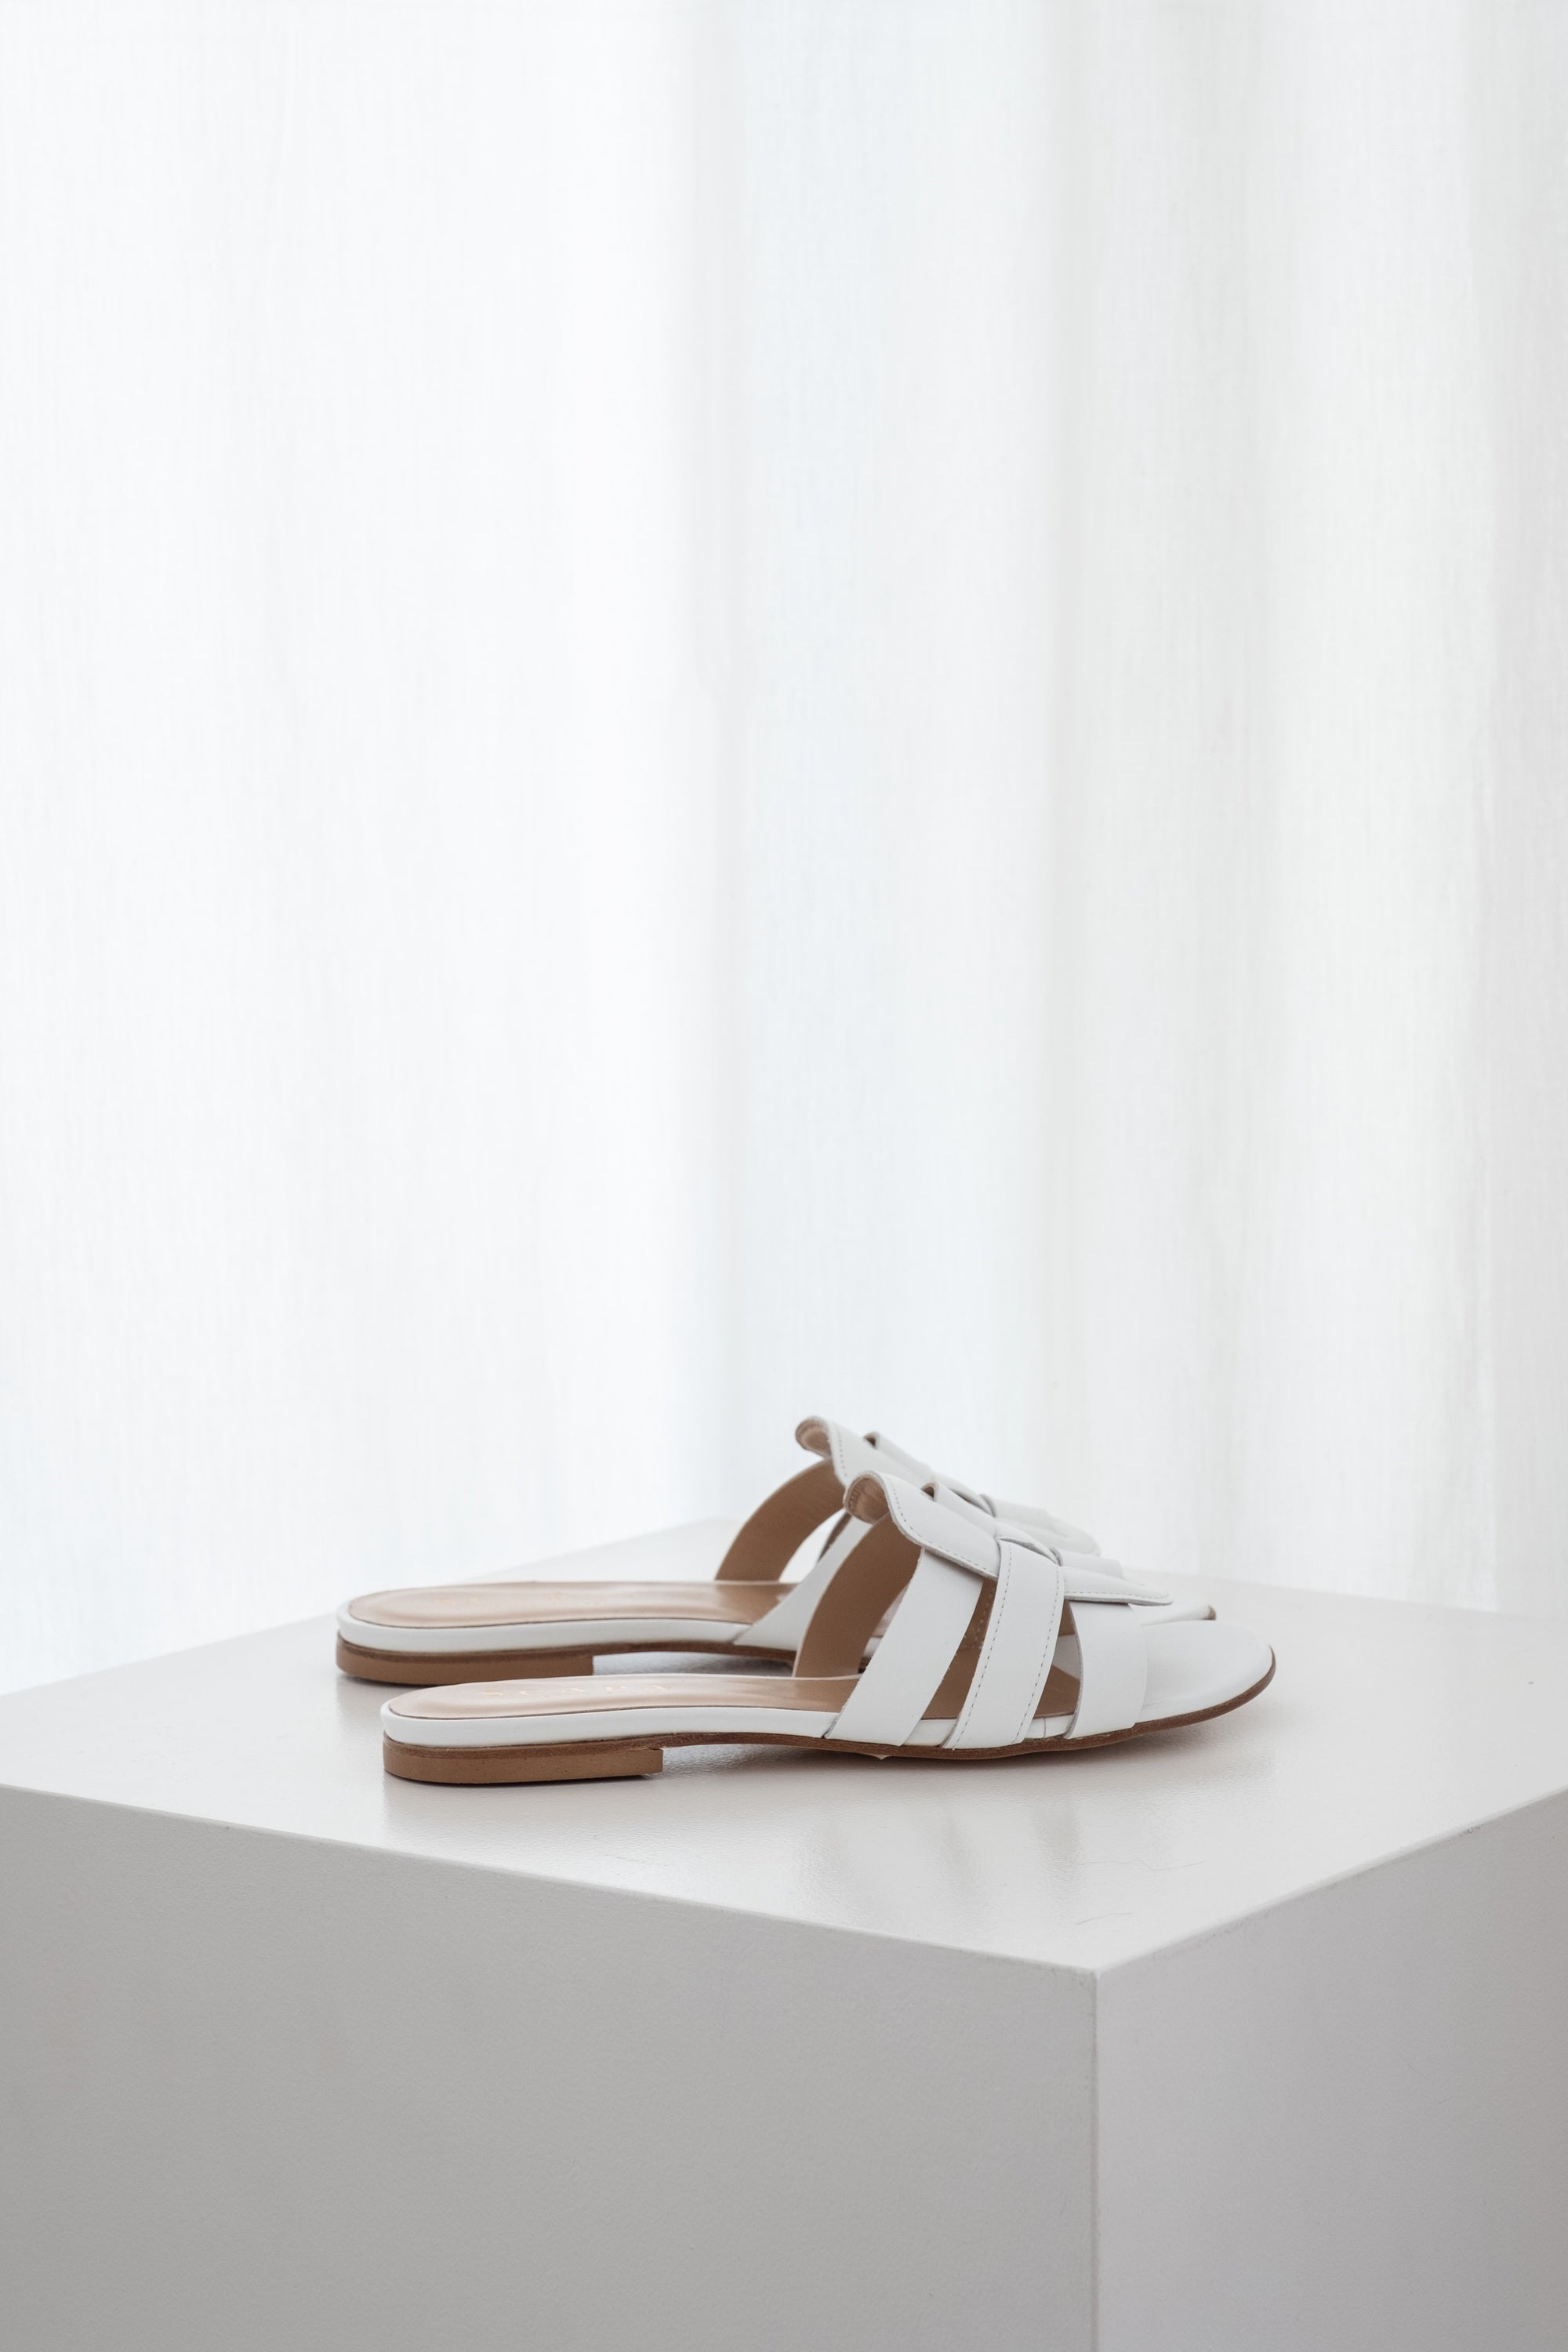 SLIP CAPRI - Shoes - SCAPA FASHION - SCAPA OFFICIAL